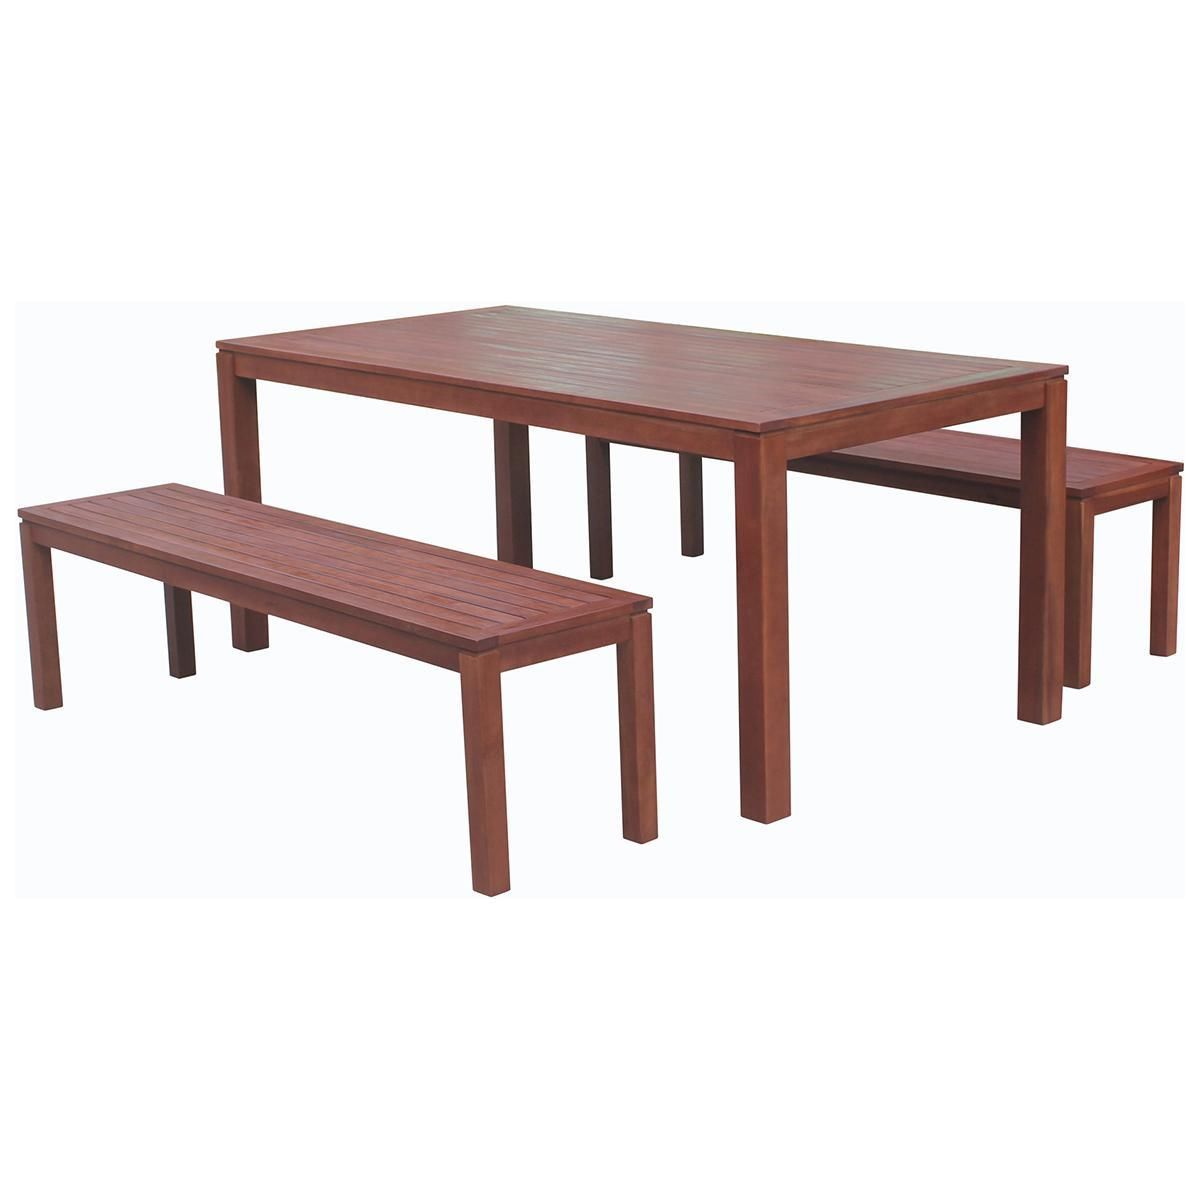 Outdoor table set storefront for Outdoor table set